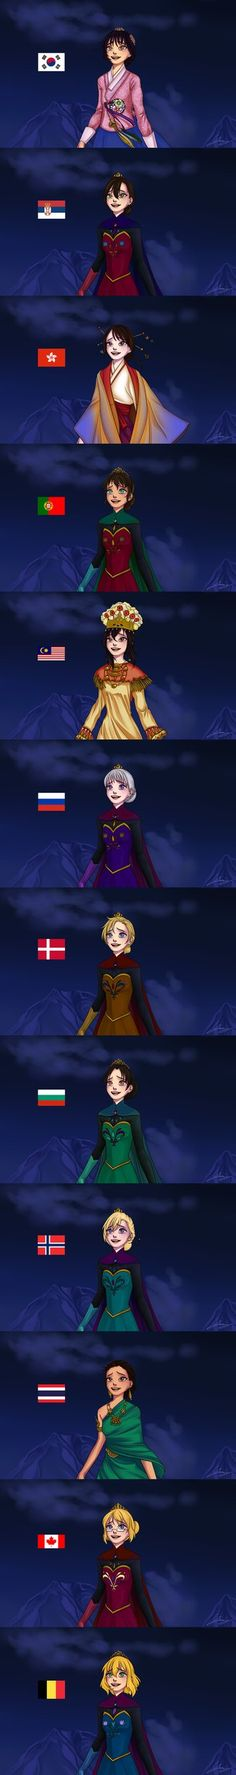 Elsa with different nationalities